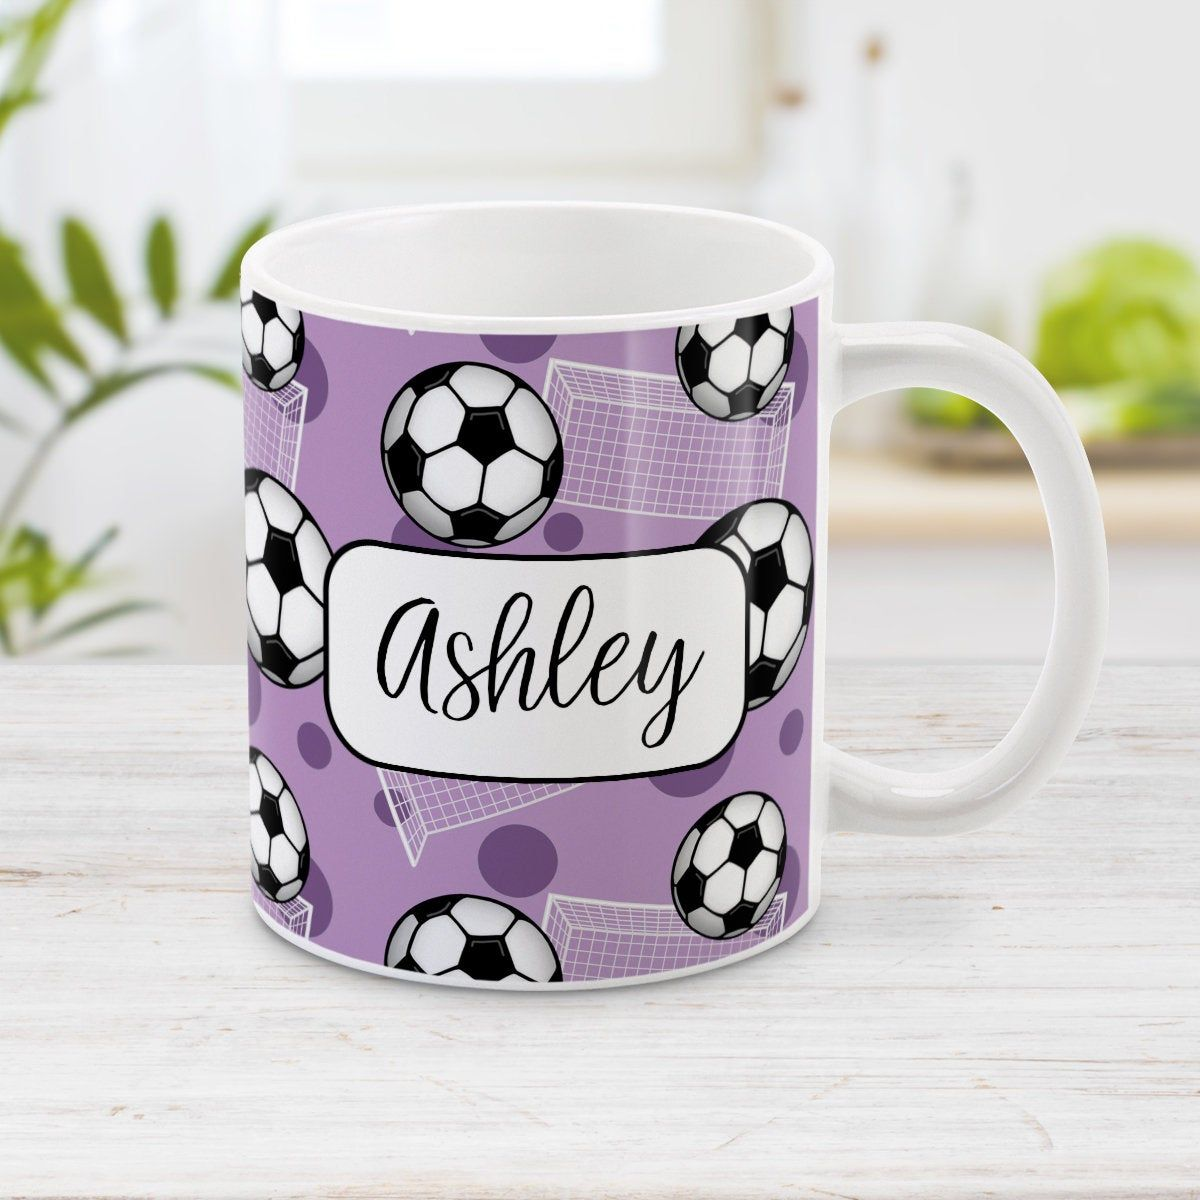 Pin on Coffee Mugs and Cups on Etsy